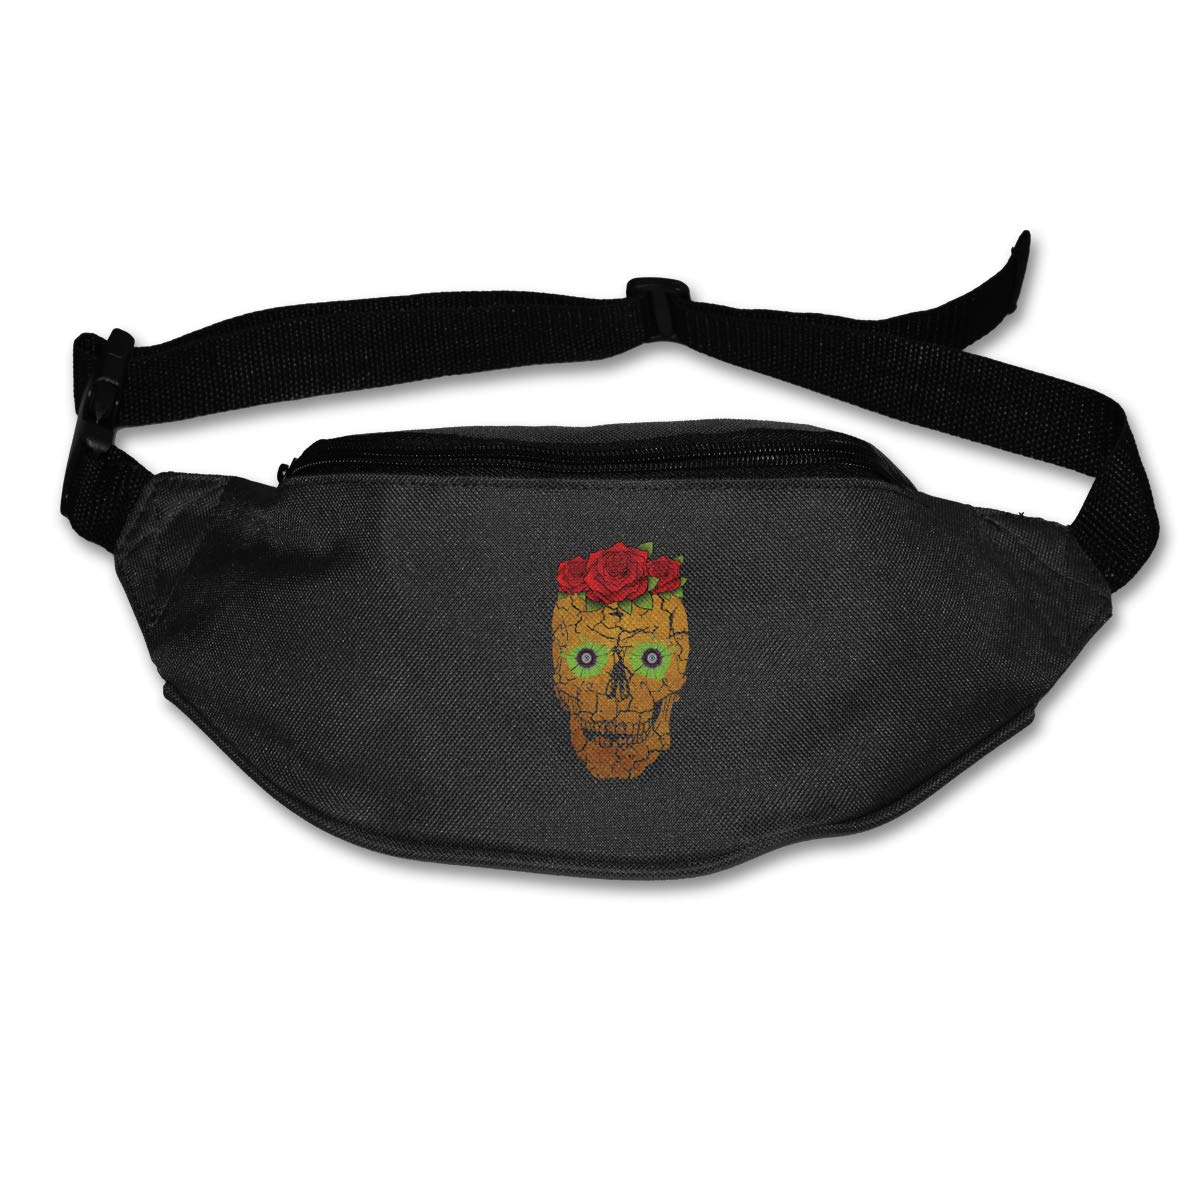 Gold Skull And Roses Sport Waist Bag Fanny Pack Adjustable For Travel